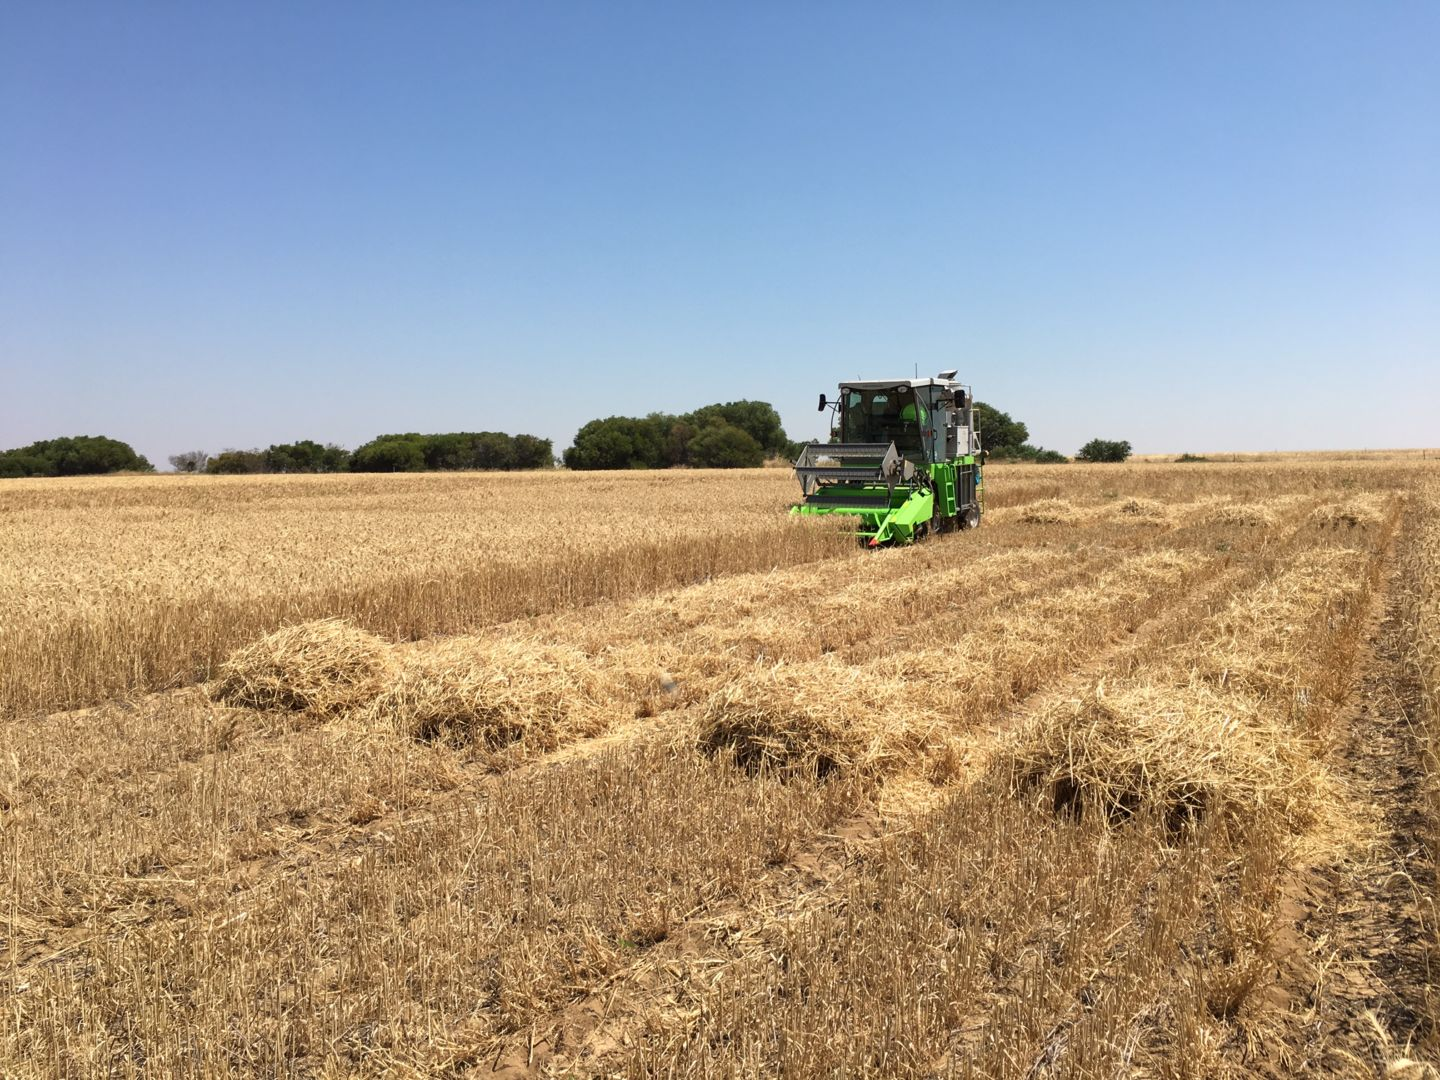 Plot harvester havesting biochar trials